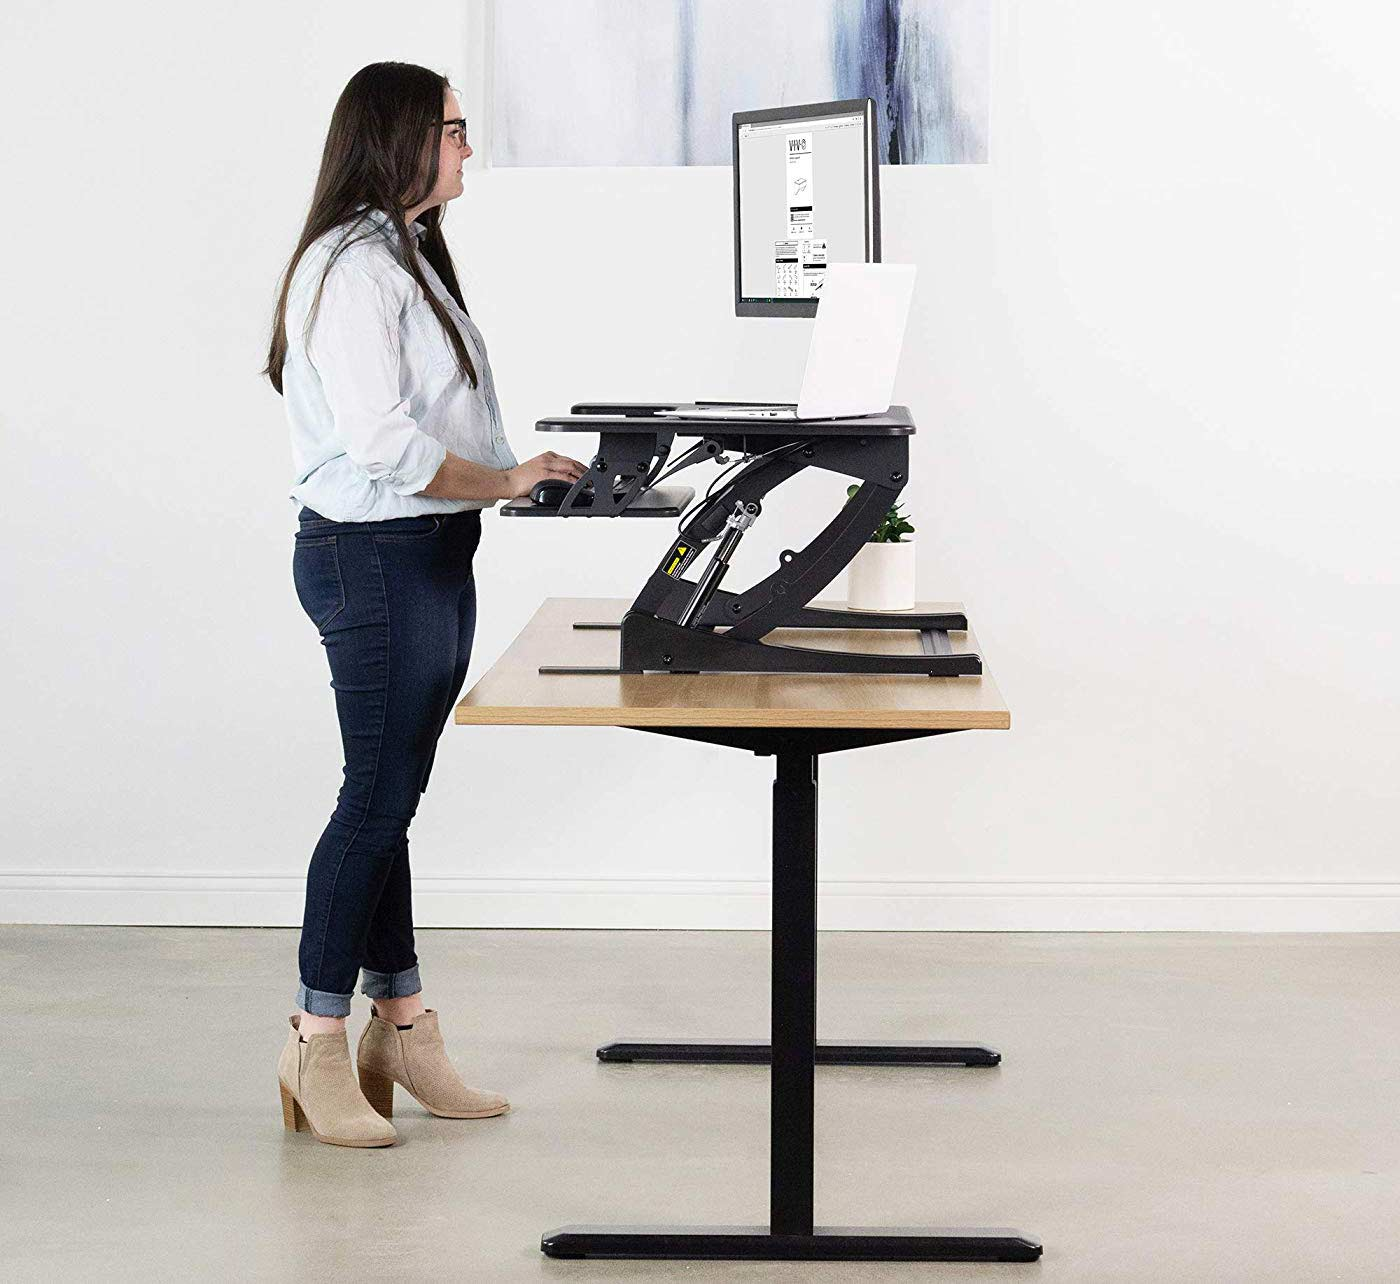 Woman using a standing desk.